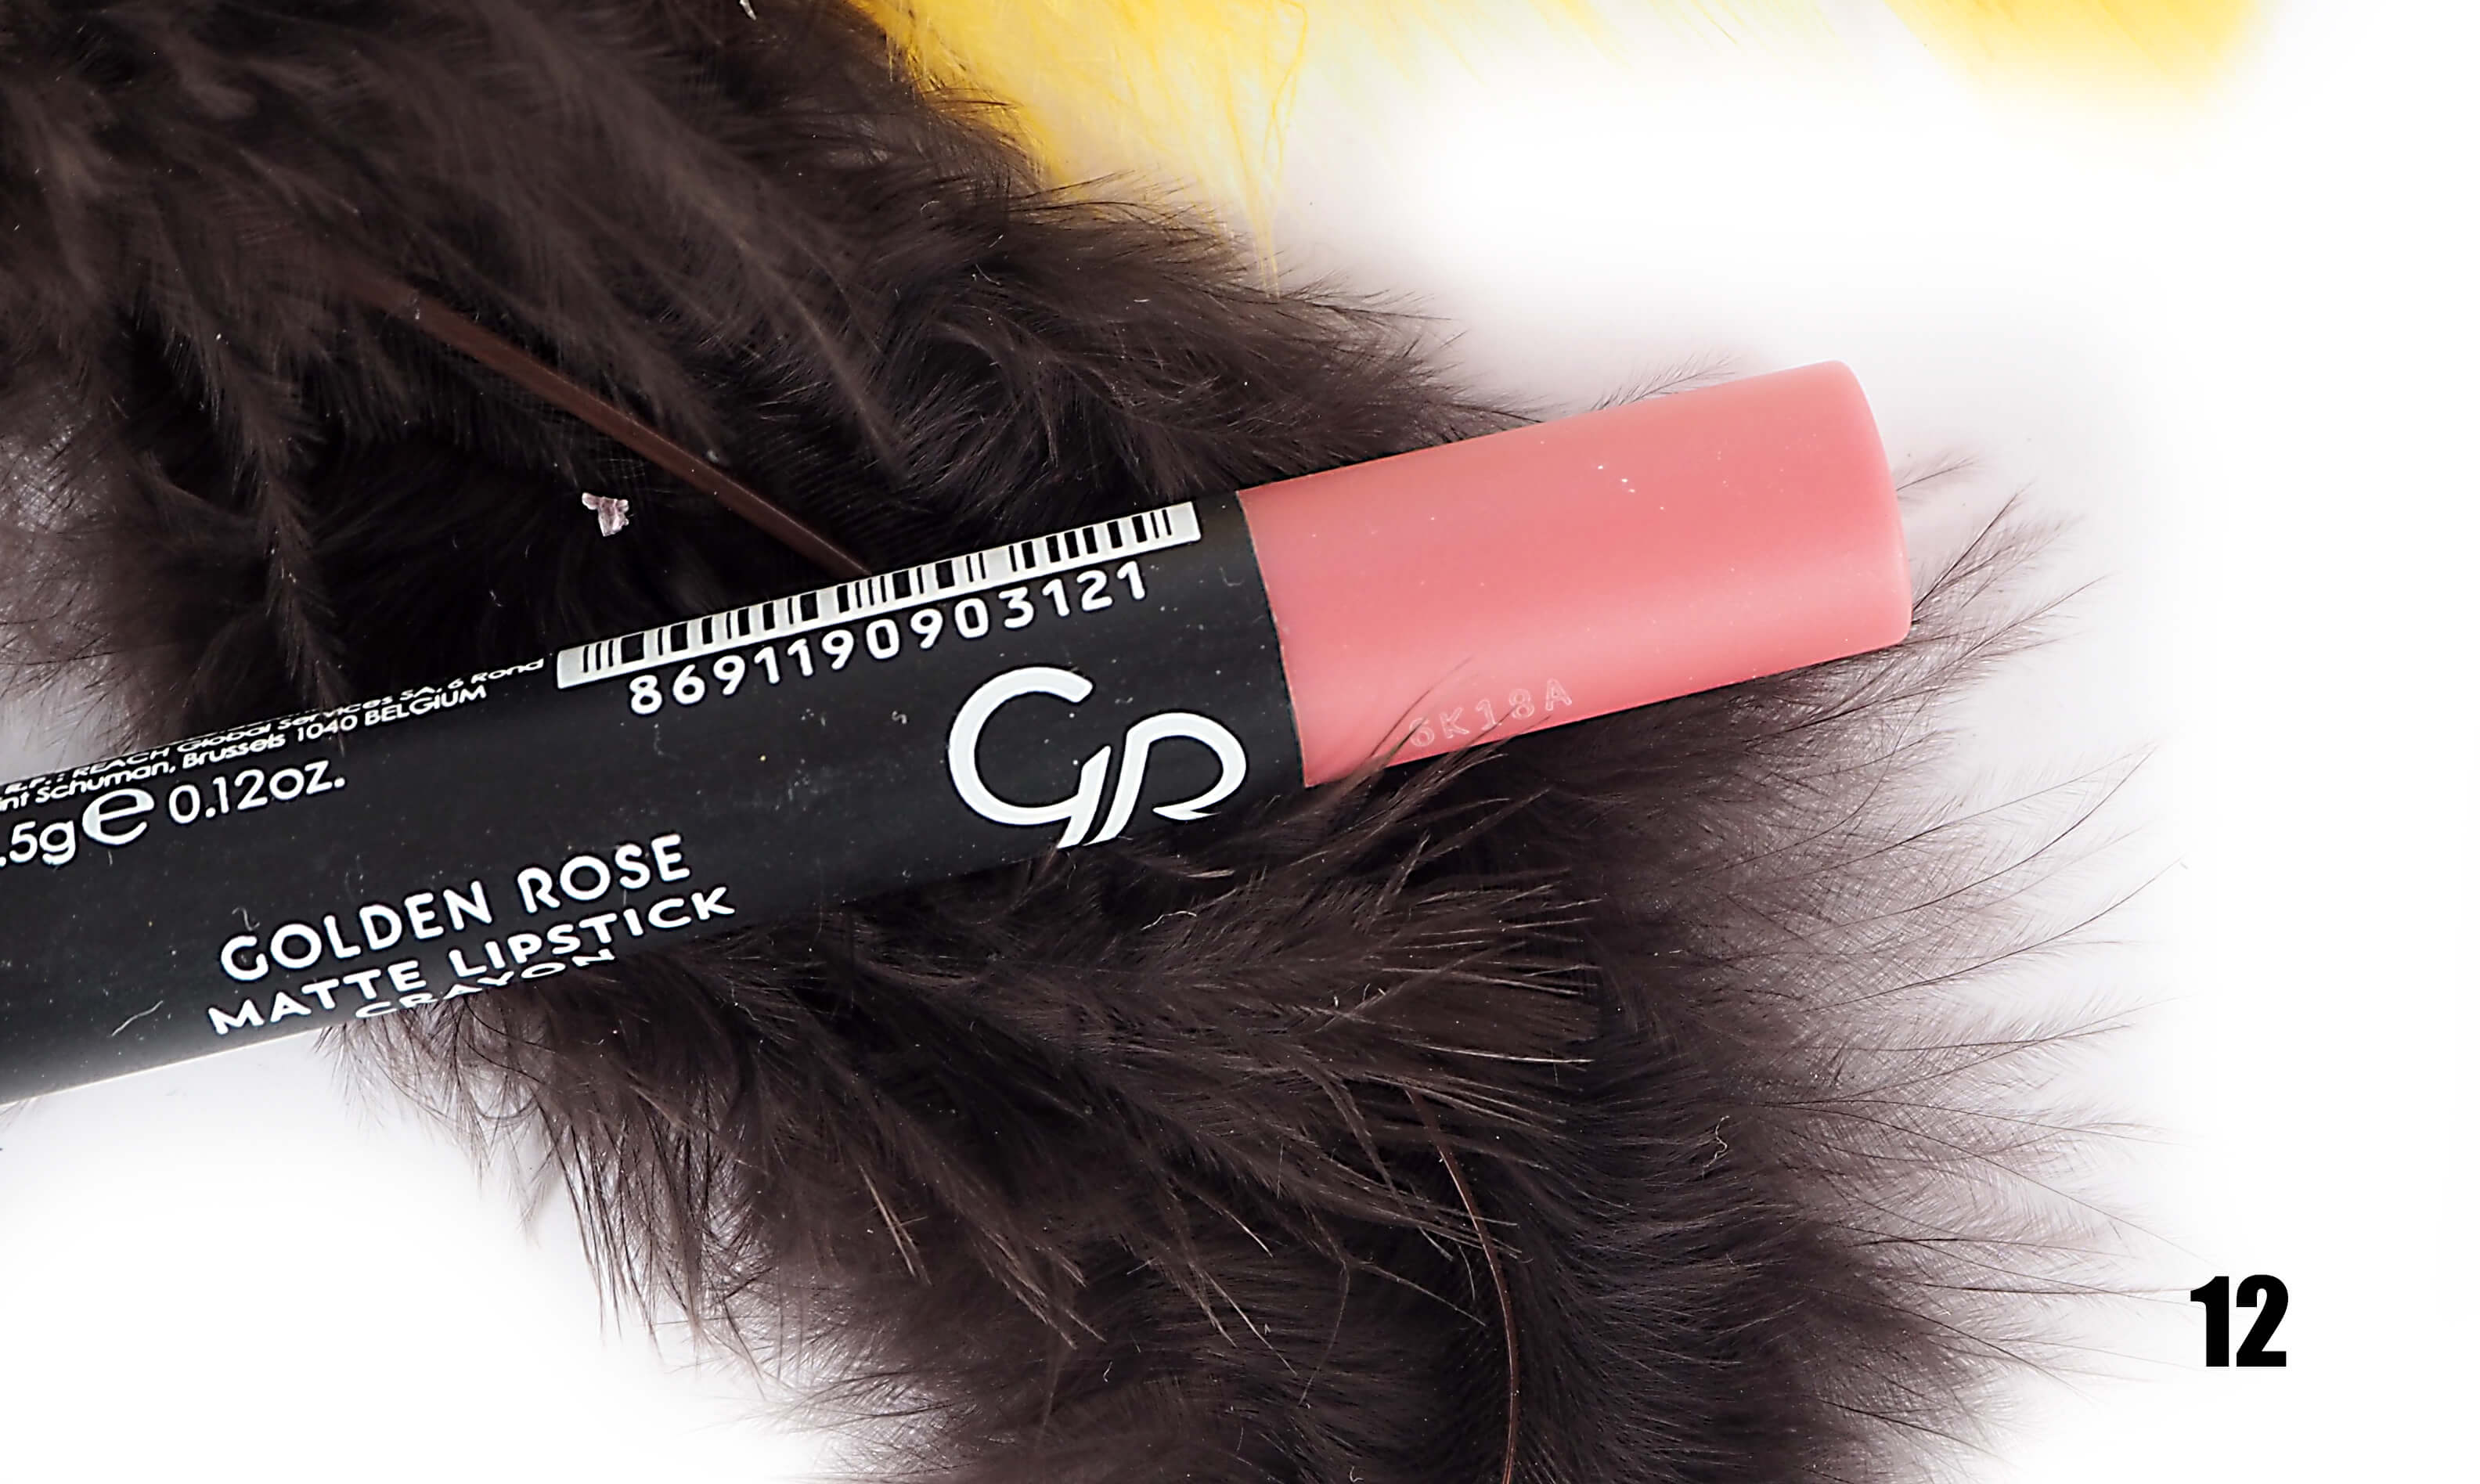 GOLDEN ROSE 12 MATTE LIPSTICK CRAYON